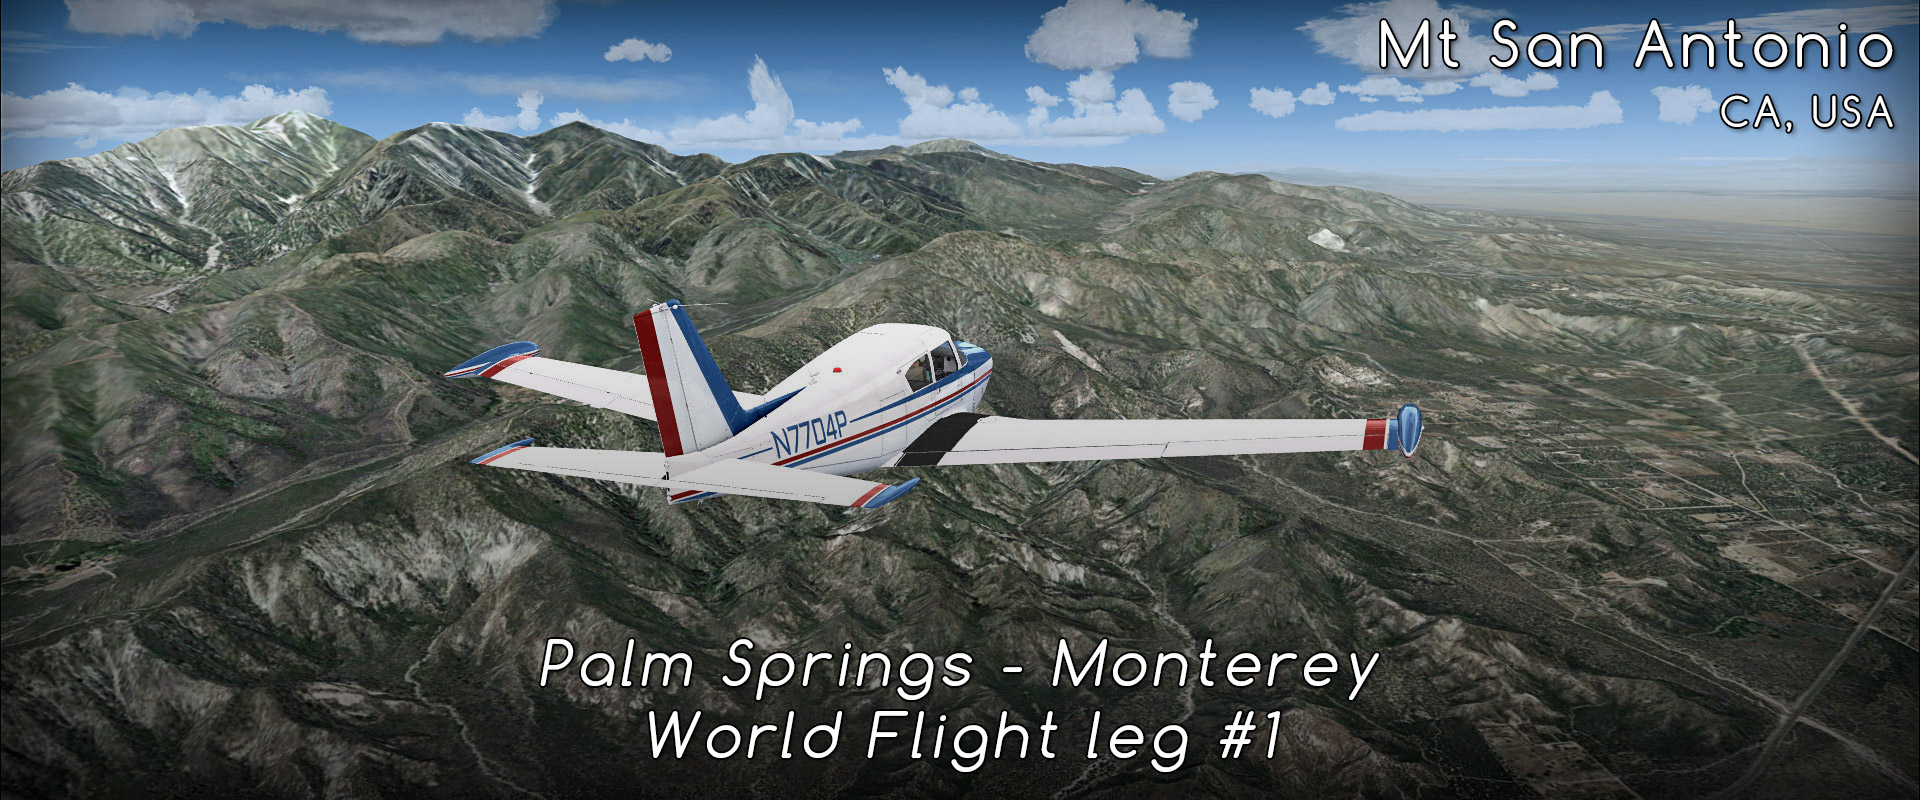 World Flight #1 Palm Springs to Monterey (KPSP-KMRY)